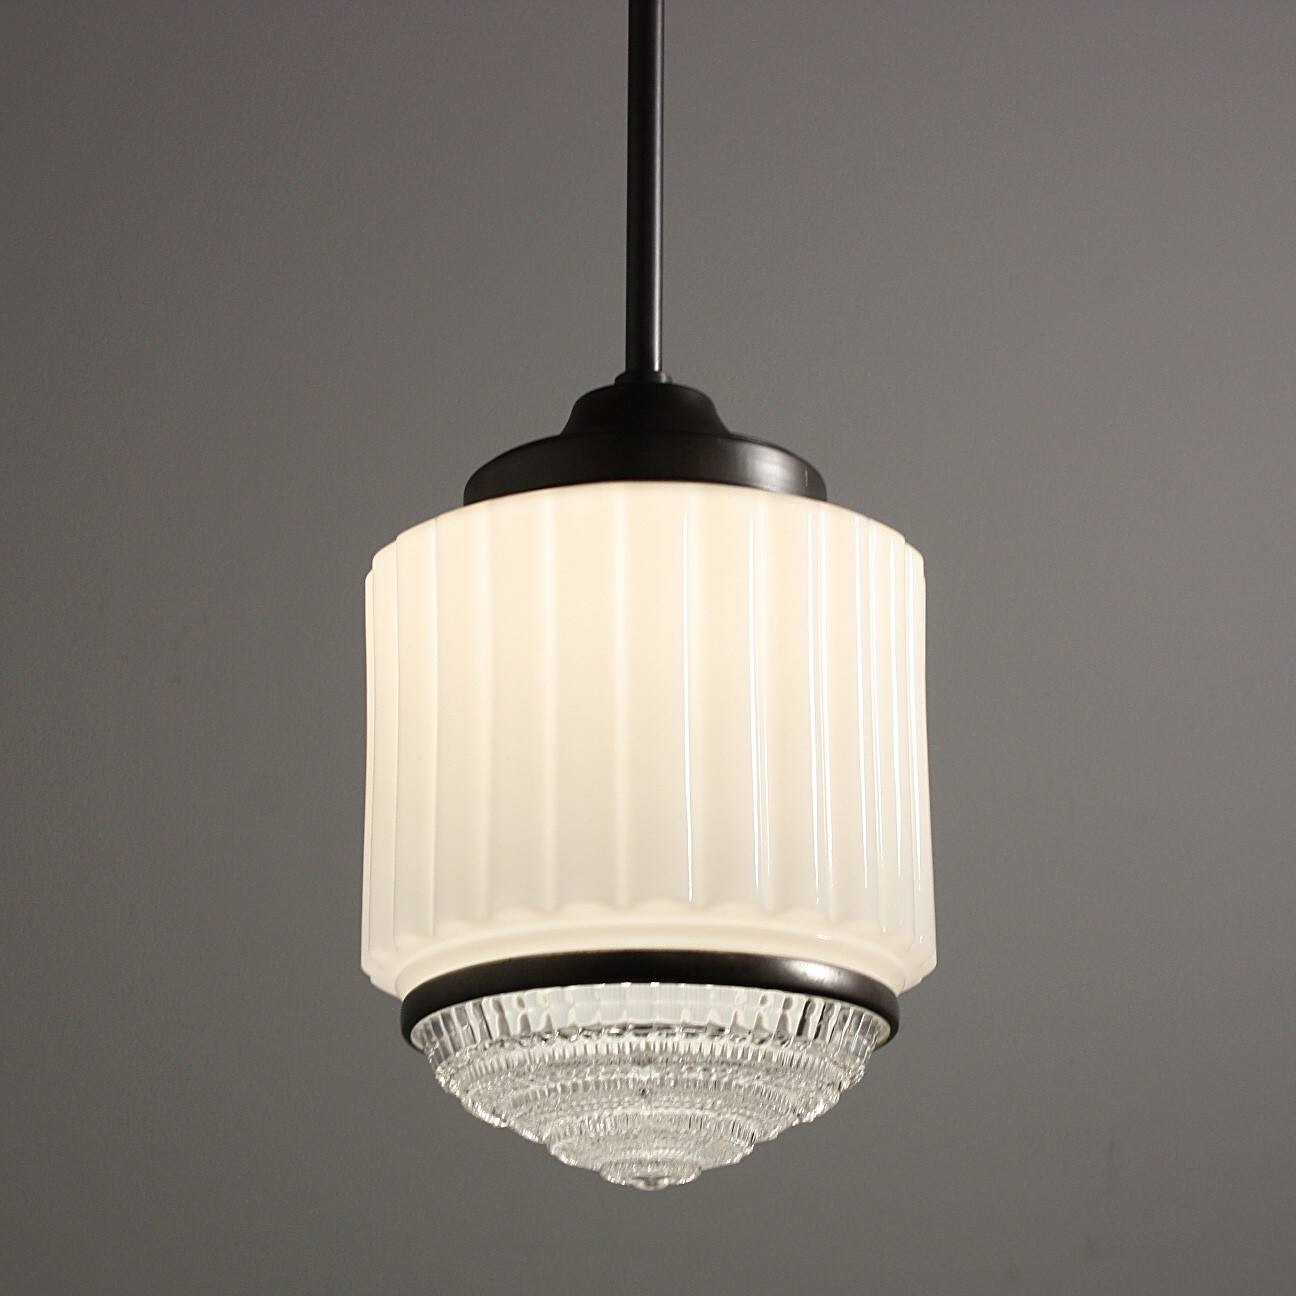 Antique Art Deco Skyscraper Pendant Light C. 1930S - Preservation within Art Nouveau Pendant Lights (Image 6 of 15)